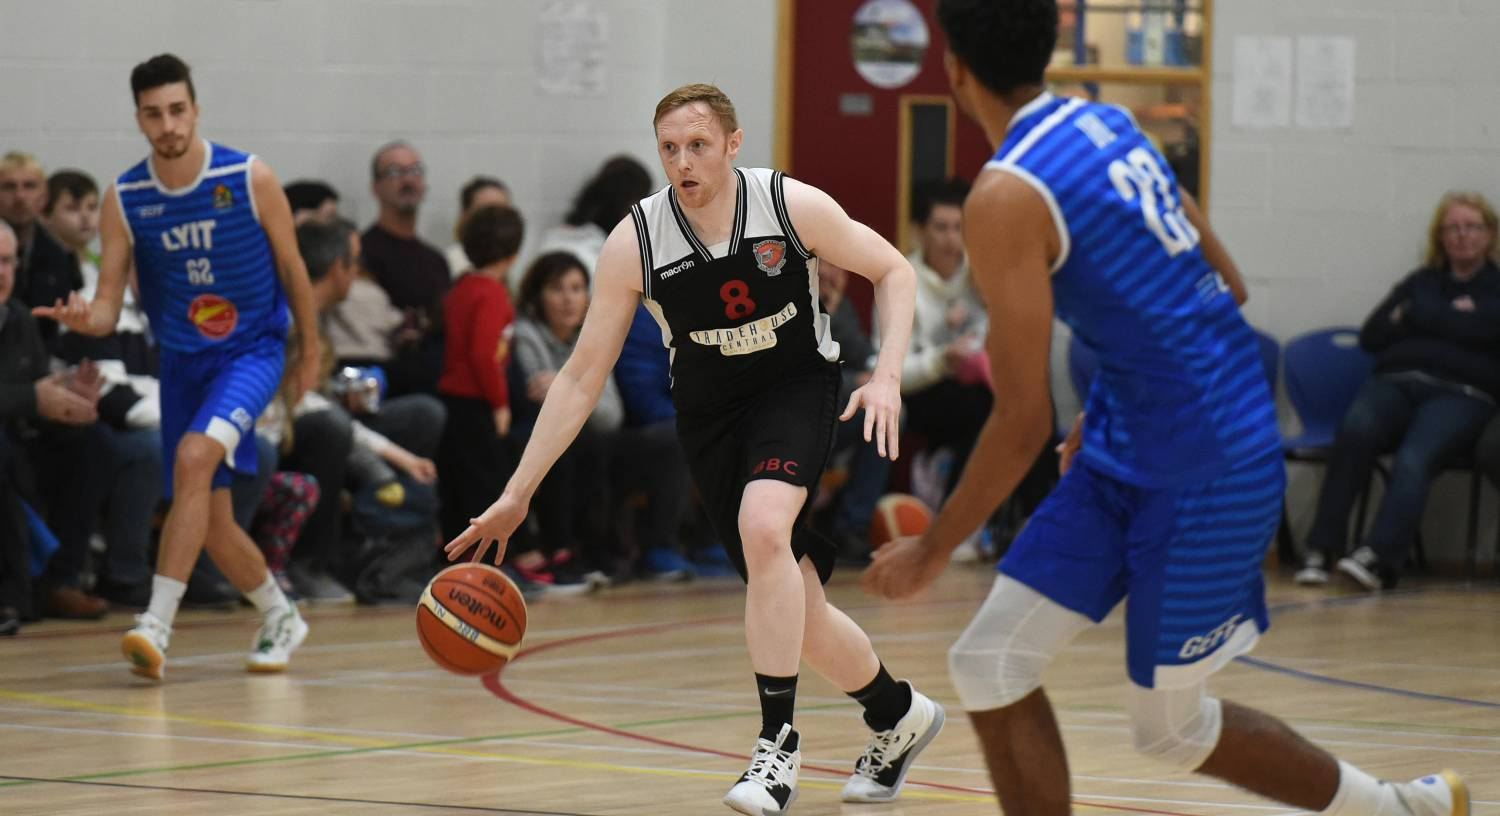 Ballincollig star Ian McLoughlin gets out while he's still ahead of most